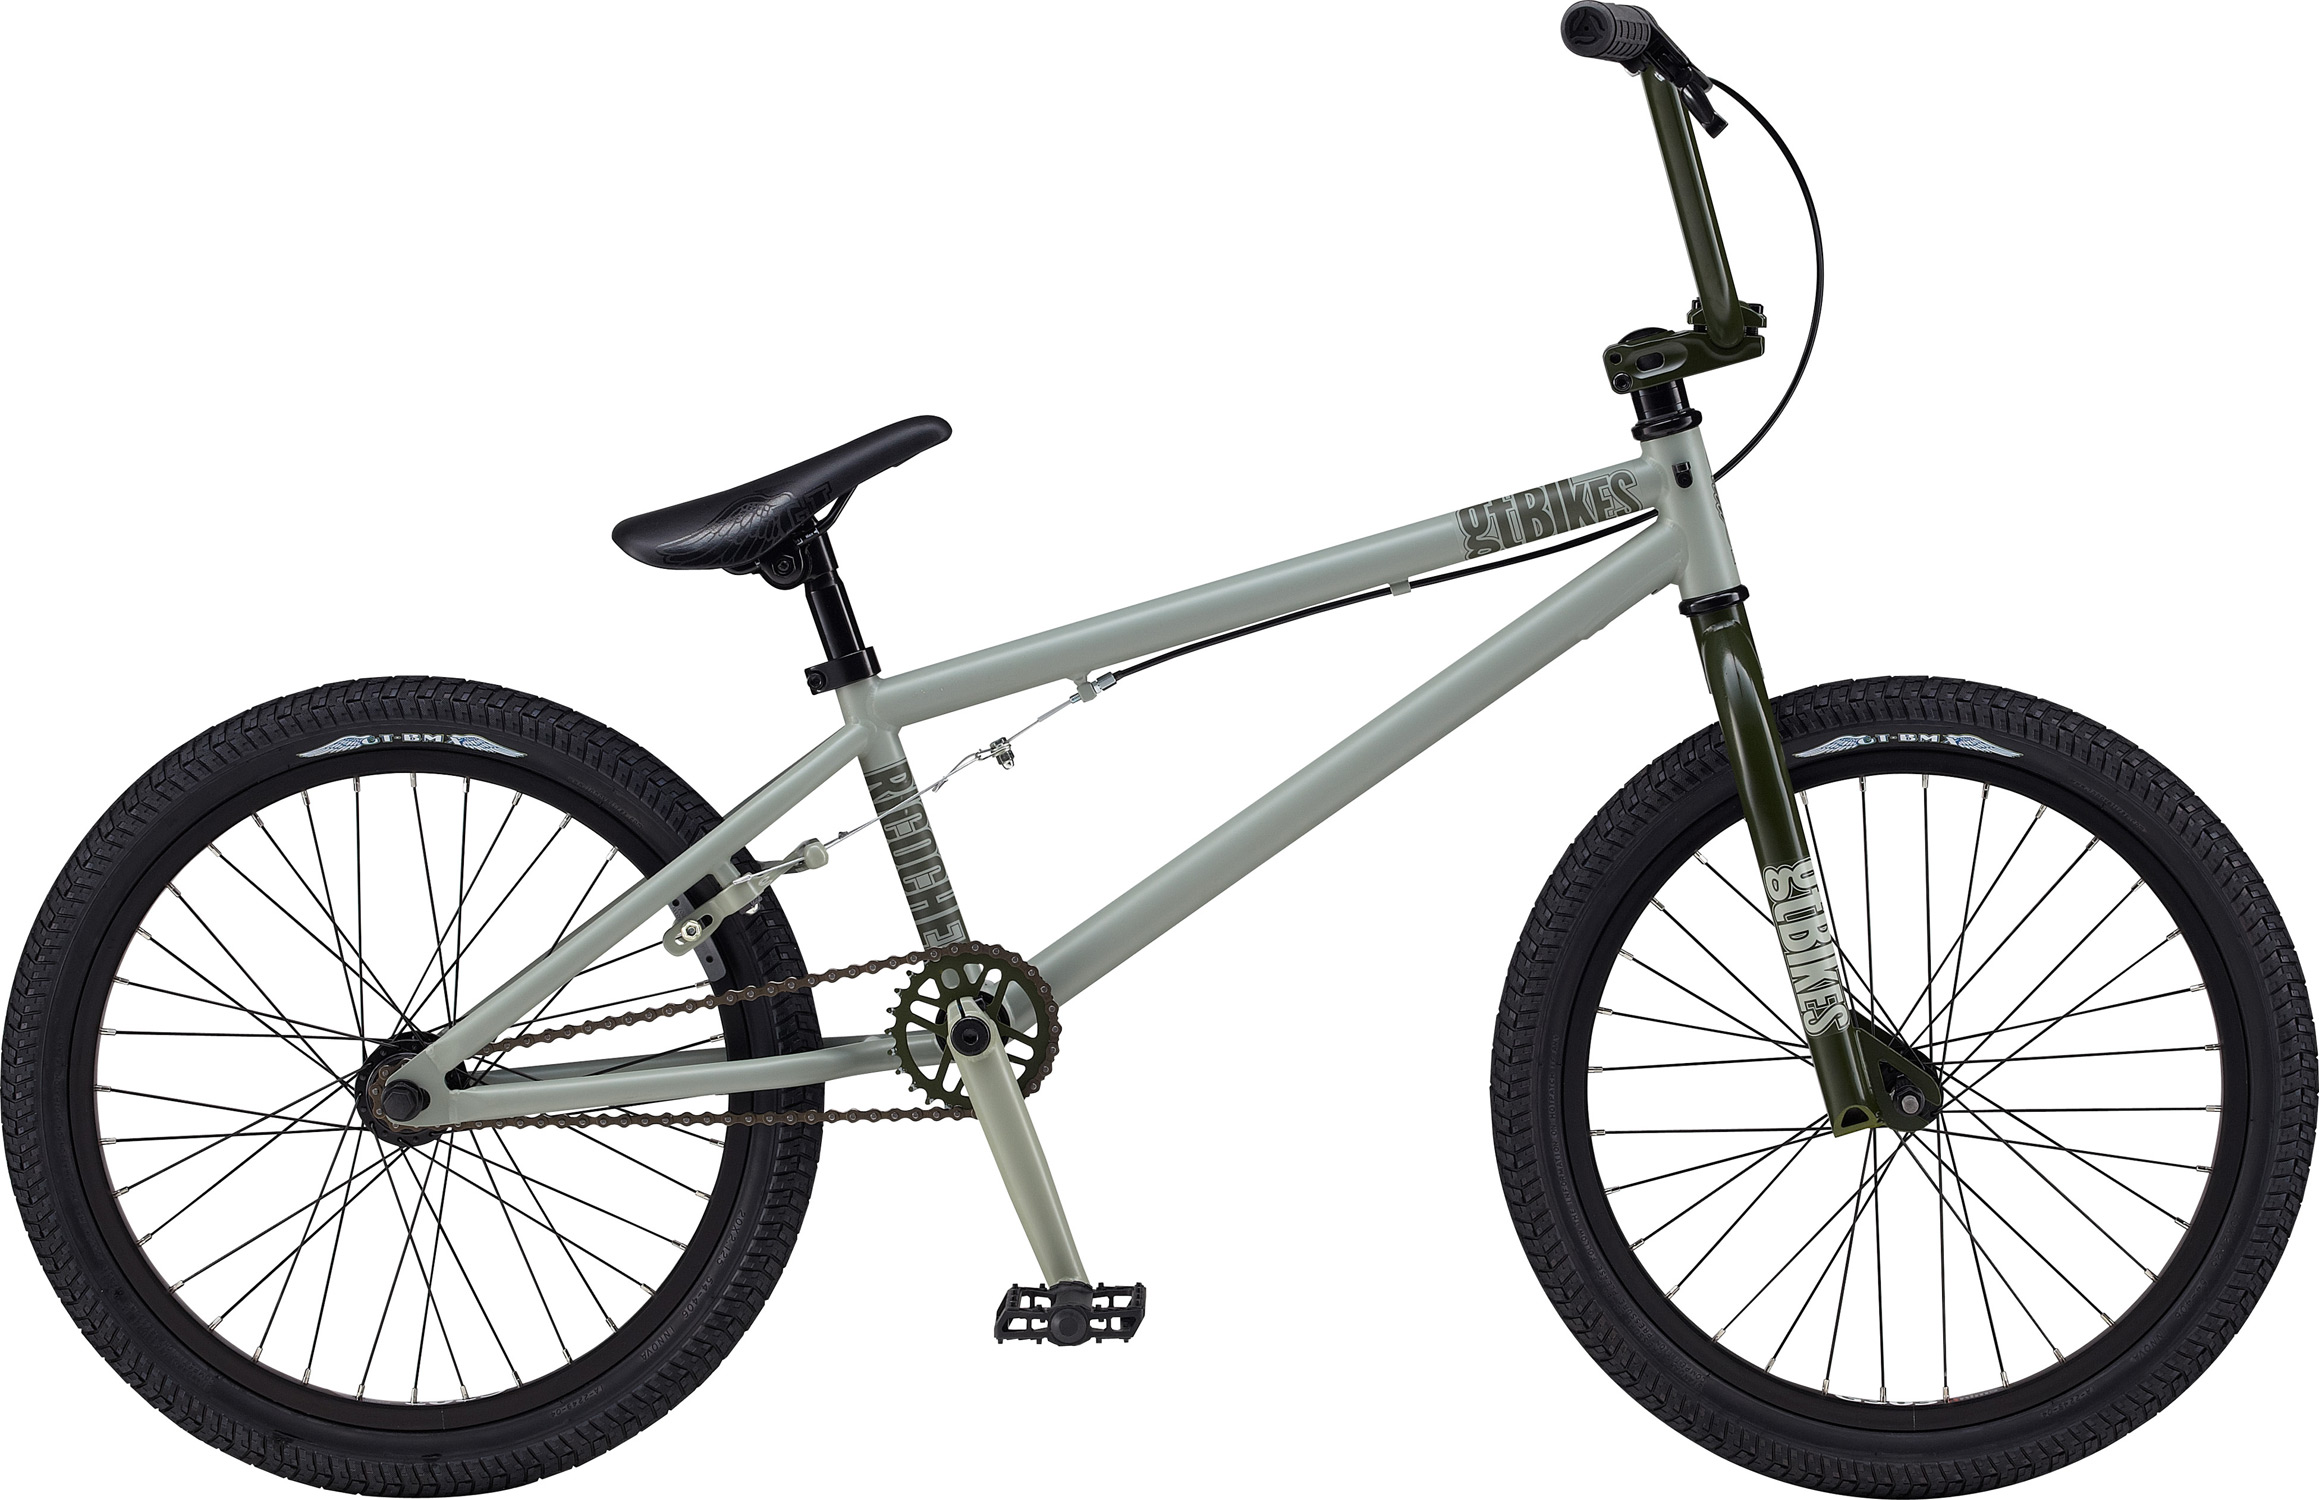 "BMX Key Features of the GT Richochet BMX Bike: Frame: NEW Straight Gauge, Hi-Ten, Dumped C/S, Lubid S/S, 14mm Dropouts, C/S Mounted Brake Mounts Front Suspension: GT, Full Hi-Ten, 31.8-28.6 Taper, 3/8, 1 1/8"" Crankset: GT 3 Pcs Cro-Mo, 8T, 170mm 28T Steel Wheels/Hubs: GT AL Cassette Loose Ball, 3/8""F, 14mmr 32F, 36R Hole Brakes: Tektro - $201.95"